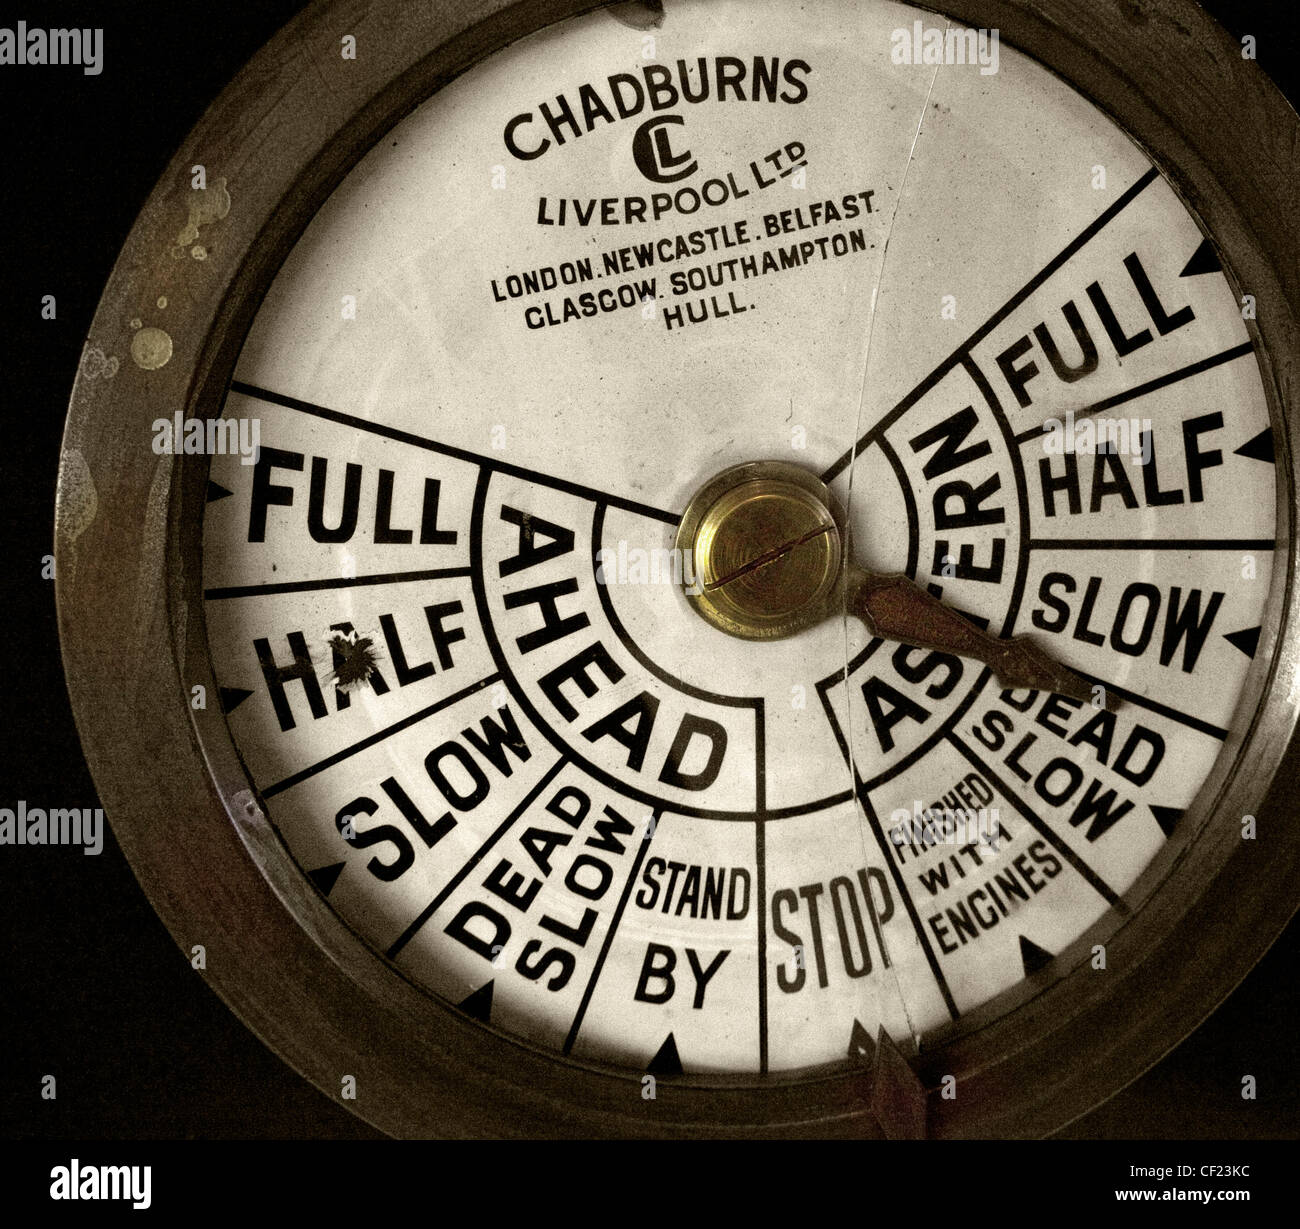 An engine order telegraph or E.O.T.,often also called a Chadburn,is,a,communications,device,used,on,a,ship,(or,submarine),for,the,pilot,on,the,bridge,to,order,engineers,in,the,engine,room,to,power,the,vessel,at,a,certain,desired,speed,gotonysmith,sea,going,ship,boat,Full,half,slow,dead,slow,stand,by,stop,finished,with,engines,dead,slow,ahead,astern,gotonysmith,Buy Pictures of,Buy Images Of